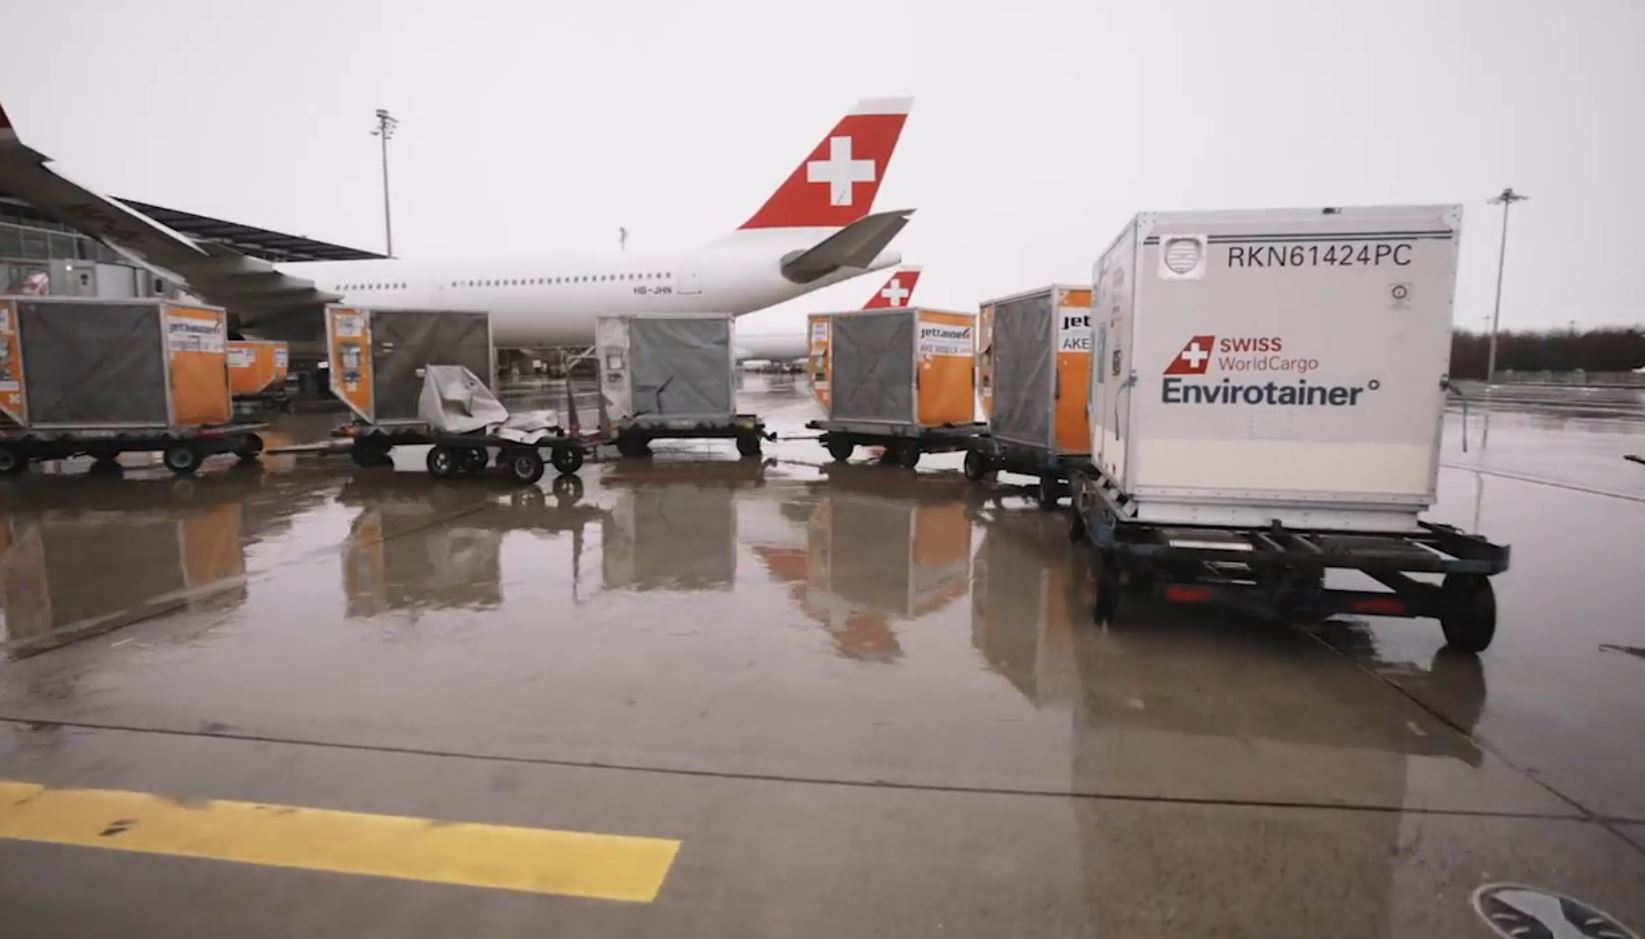 SWISS WorldCargo - Special containers for temperature-sensitive goods